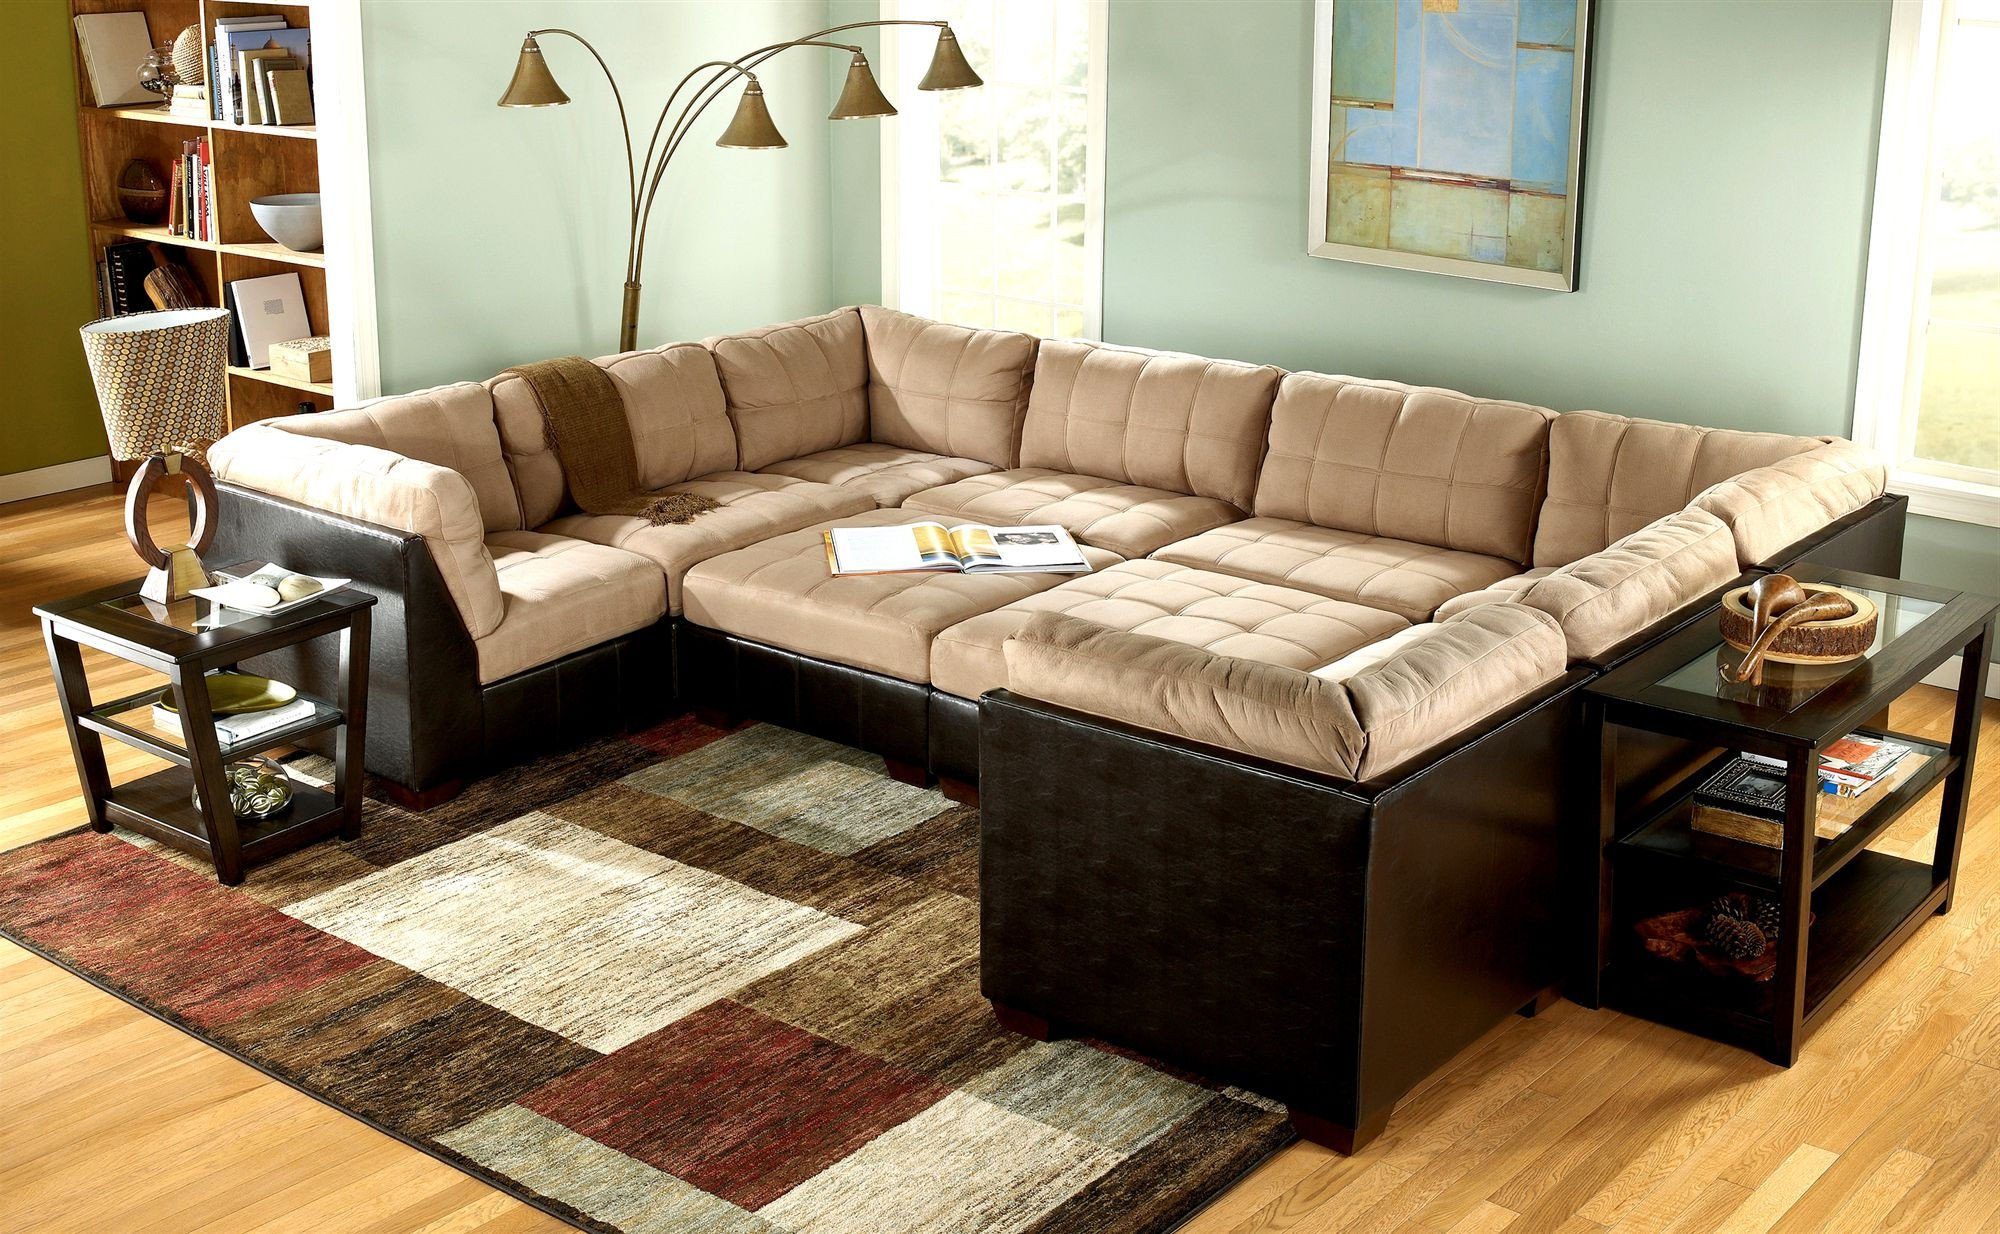 Small Living Room Ideaswith Sectionals Best Of Living Room Ideas with Sectionals sofa for Small Living Room